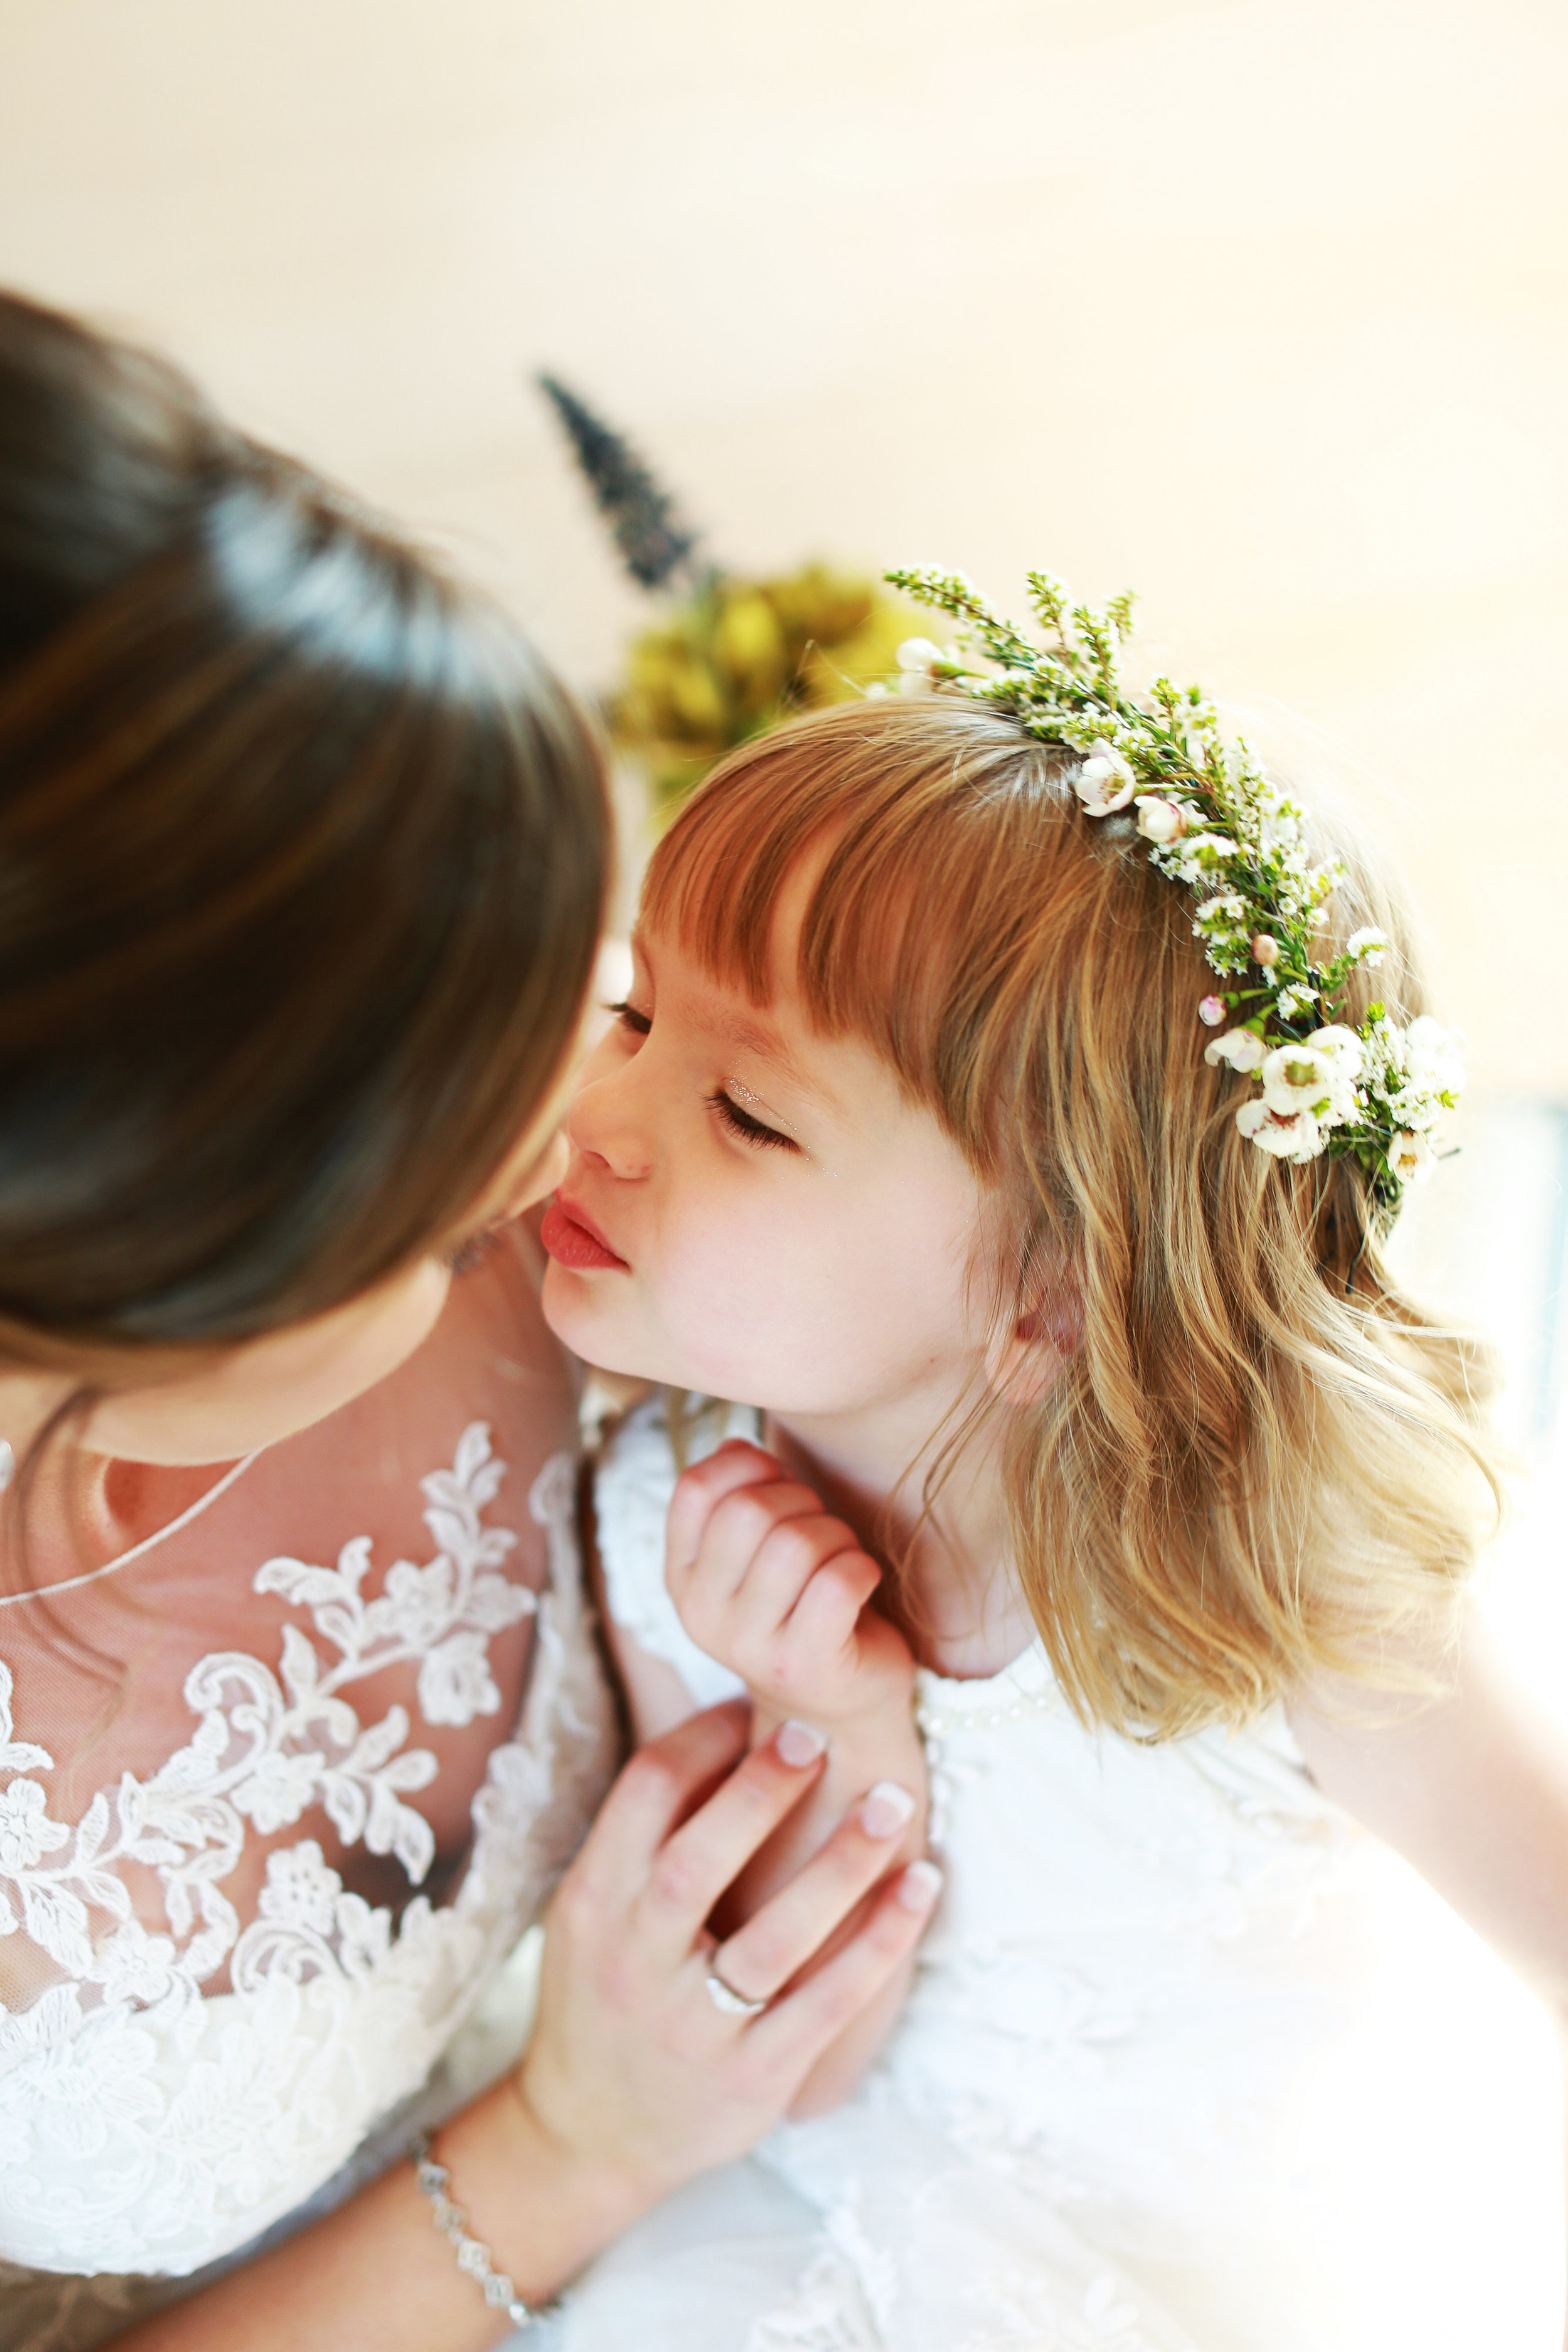 Jenna Kevin Wedding   Sixpence Events day of coordinating   Hannah Schmitt Photography   Legacy Hill Farm   flower girl with greenery crown with wax flowers